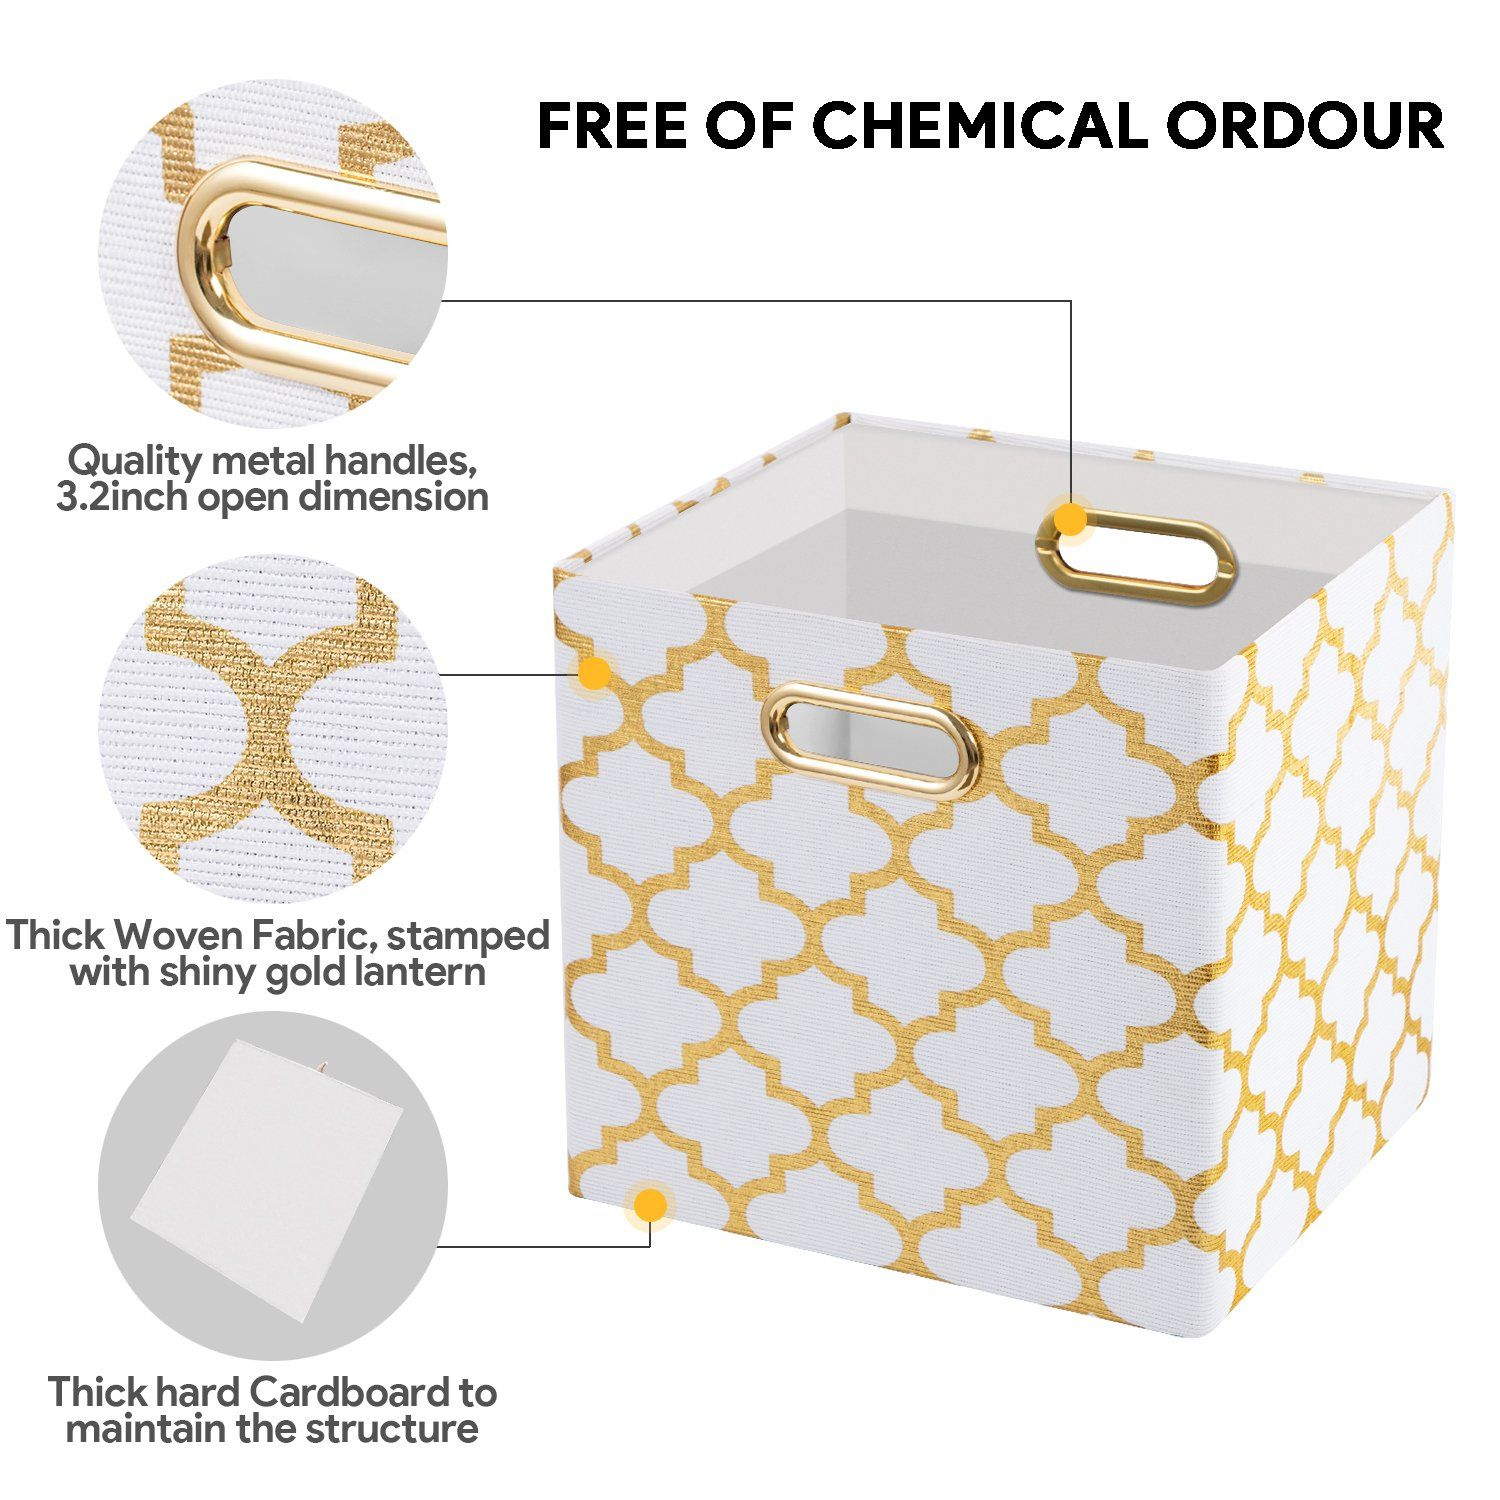 Posprica Collapsible Storage Cubes Bin Boxes Containers Drawers Organizer Baskets With Metal Han Collapsible Storage Bins Fabric Storage Baskets Fabric Storage